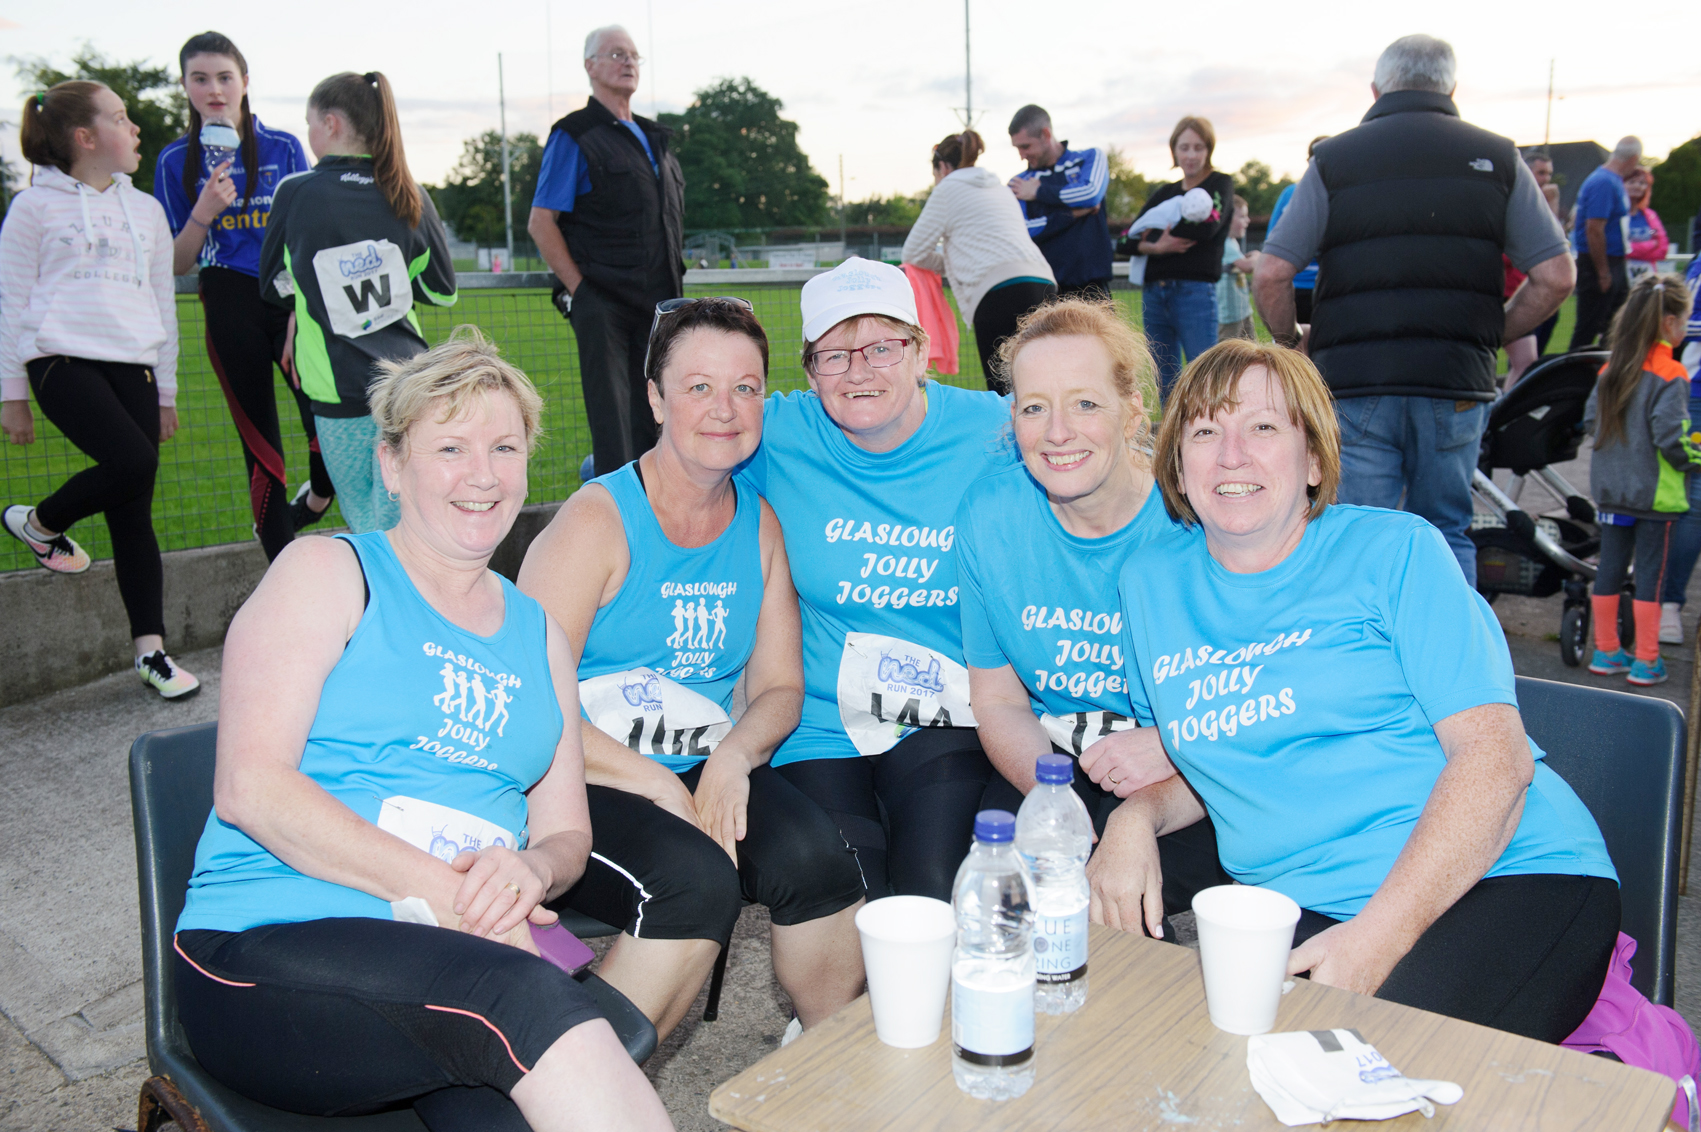 At The Ned Run from Glaslough Harriers Jolly Joggers were (L-R) Sarah McCrudden, Bernie Woods, Geraldine McAree, Kate McAree and Patrica Connolly. ©Rory Geary/The Northern Standard